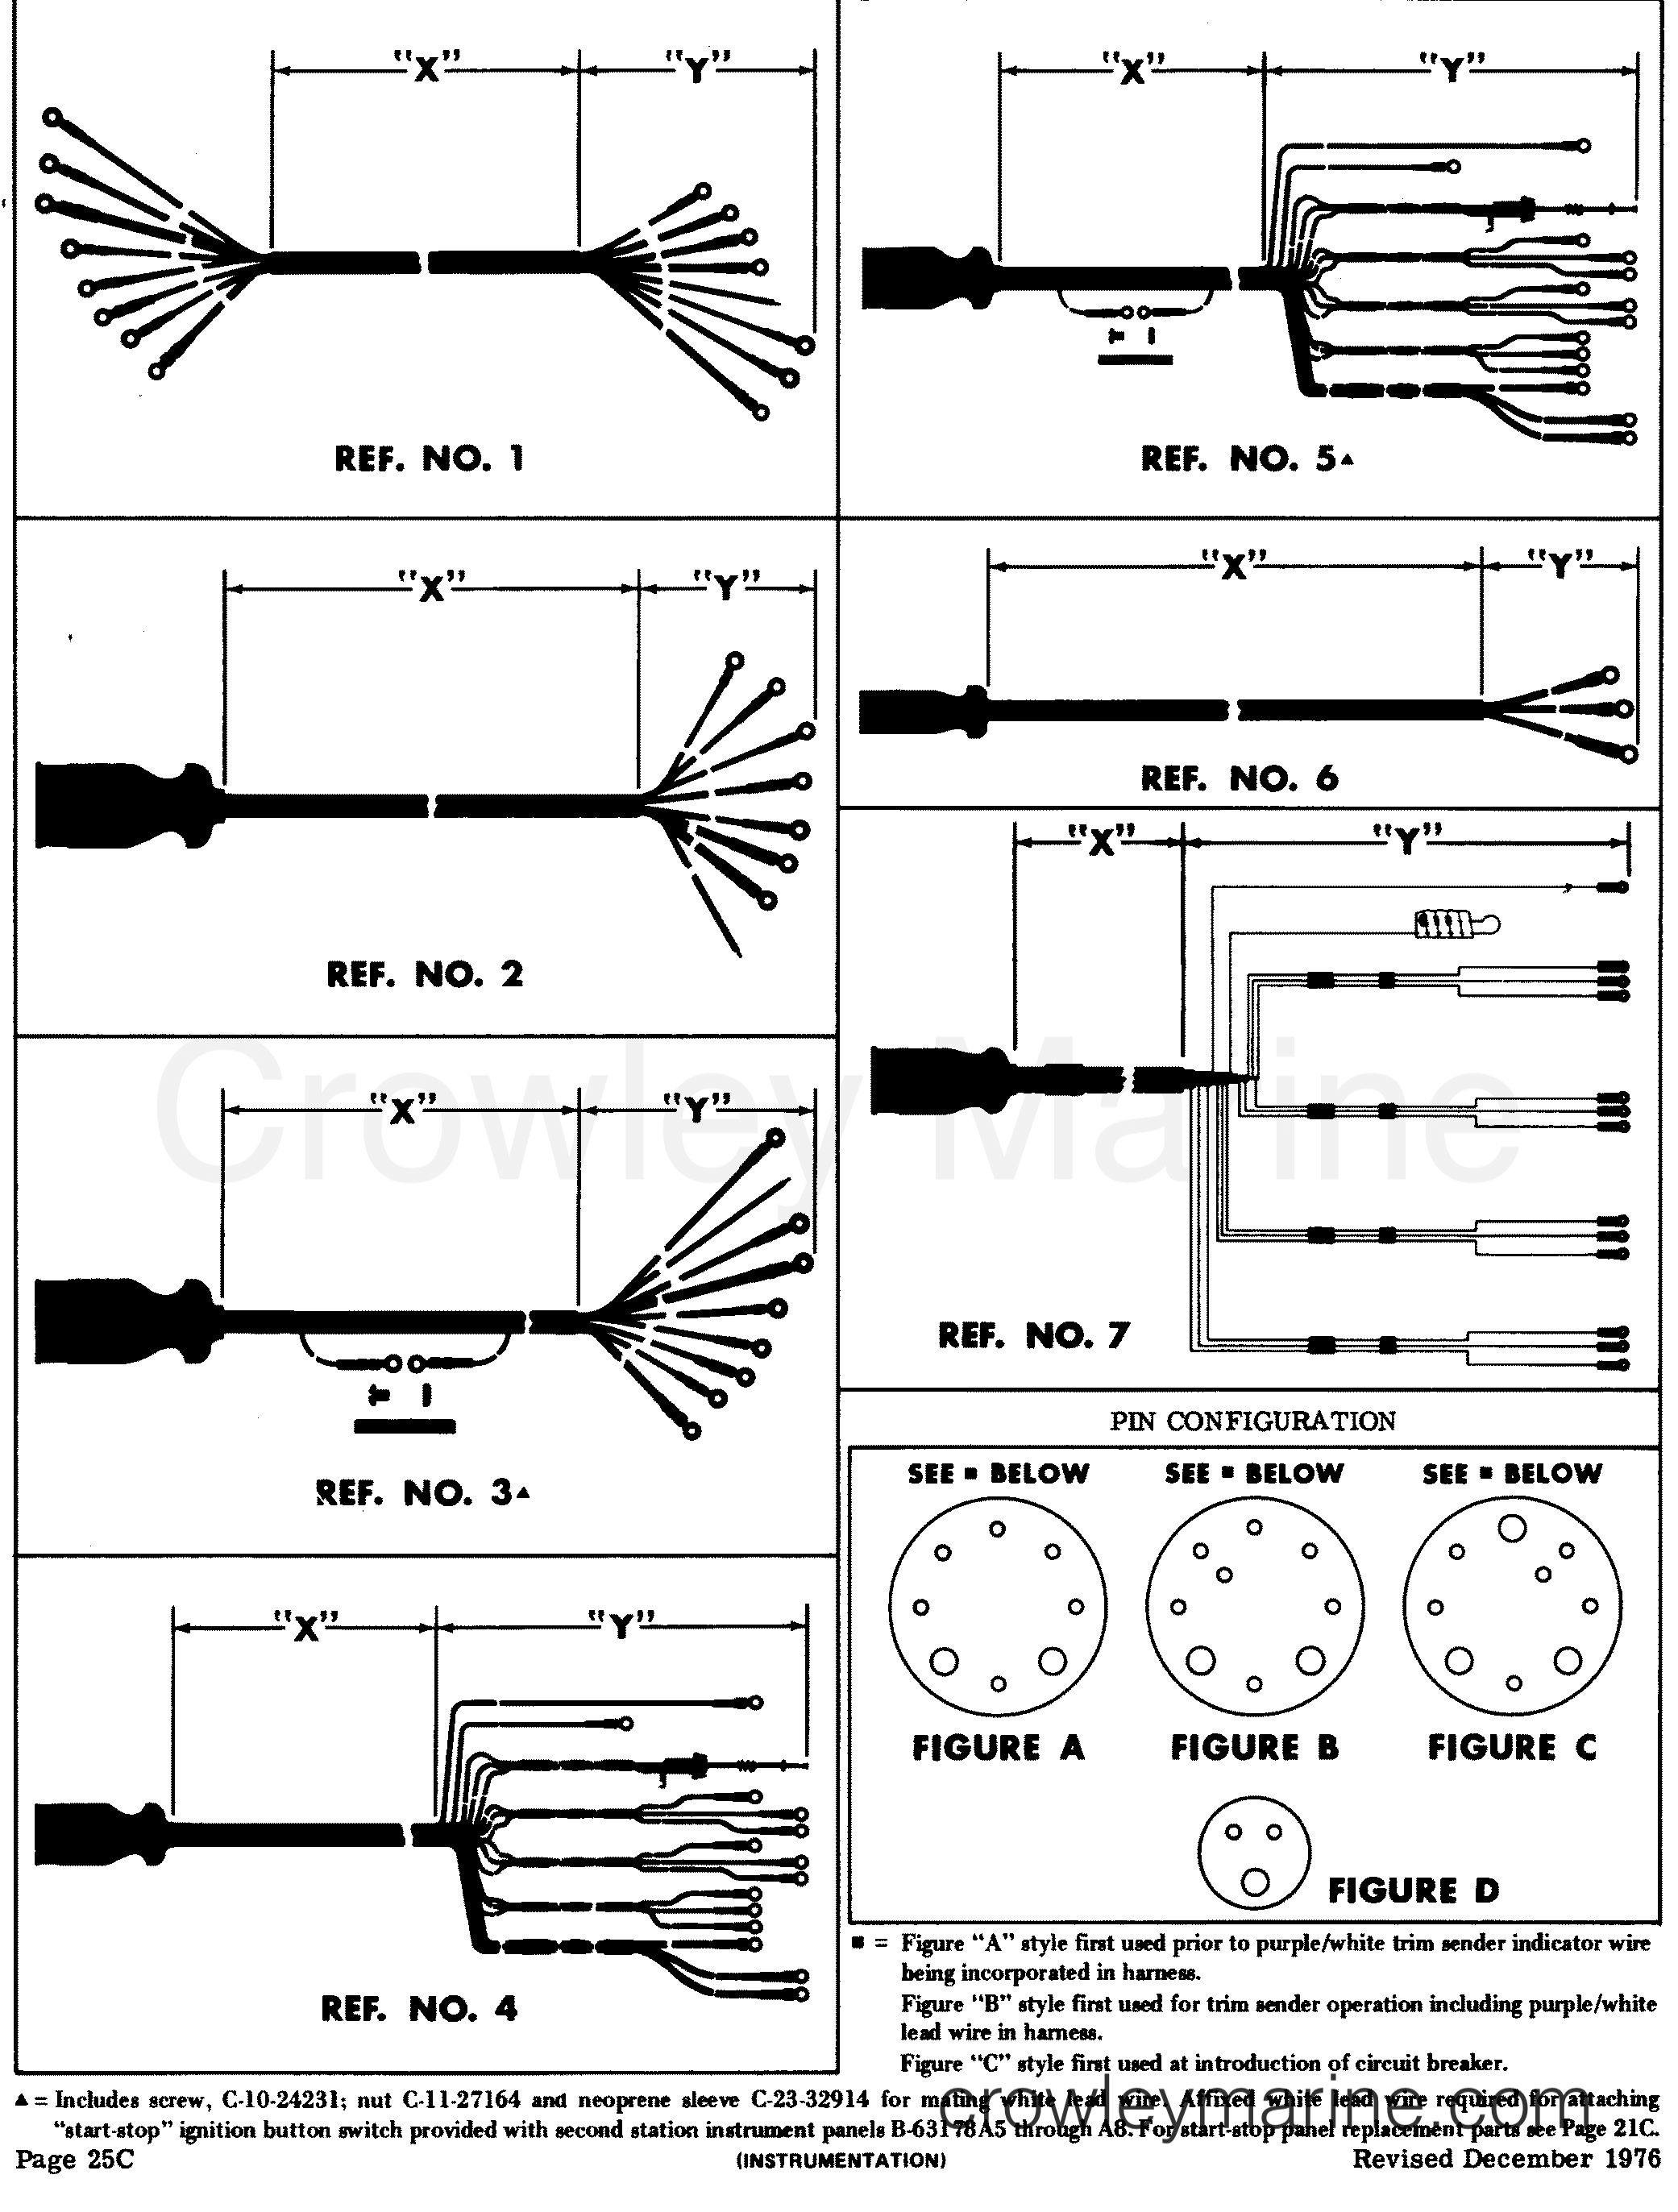 mercury 8 pin wiring harness wiring diagrams \u2022instrument panel and gauge cluster harnesses various years rigging rh crowleymarine com mercury 8 pin wiring harness extension mercury 8 pin wiring harness